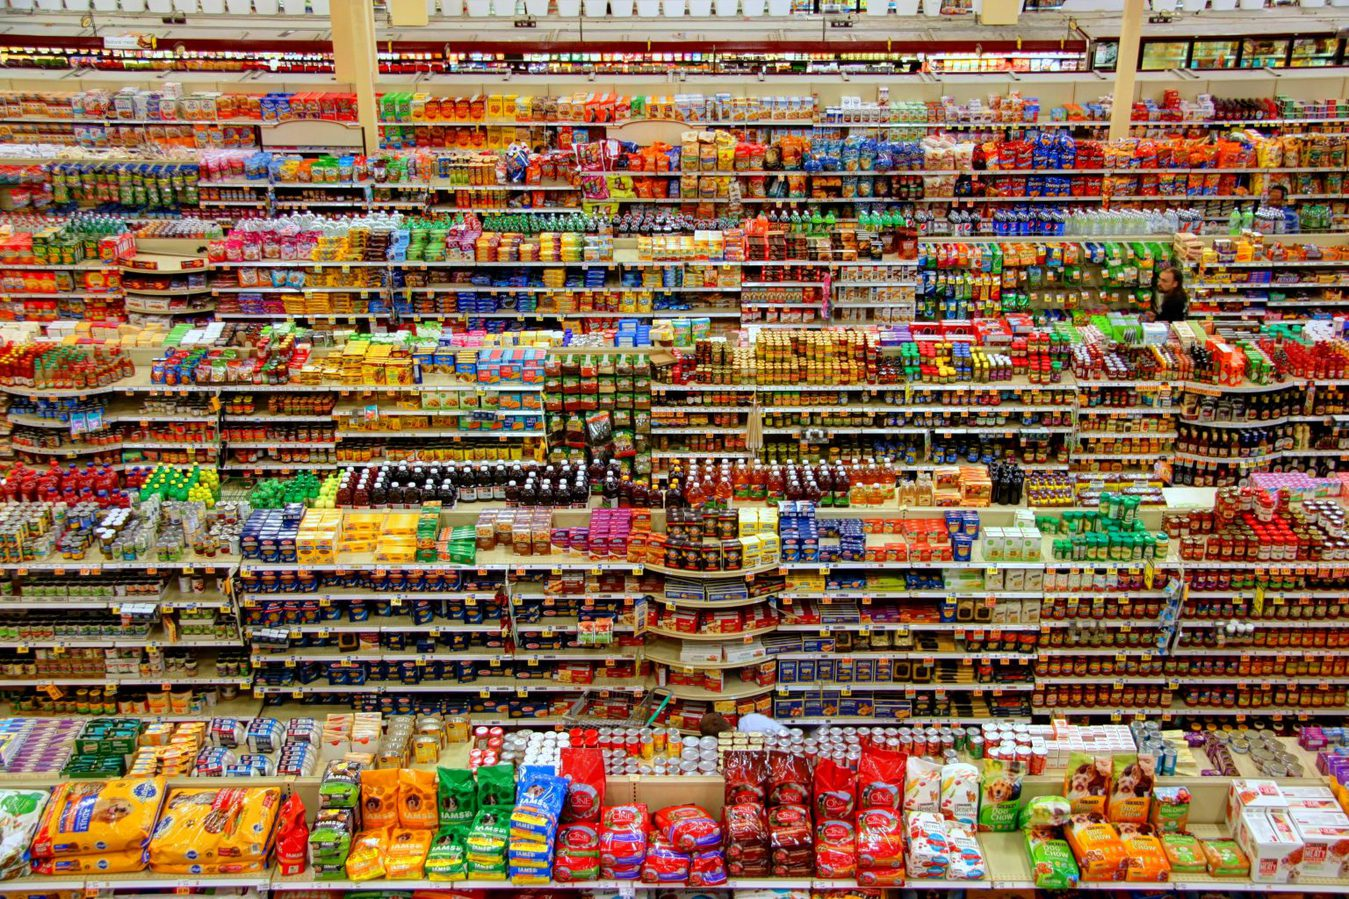 grocery store shelves from above